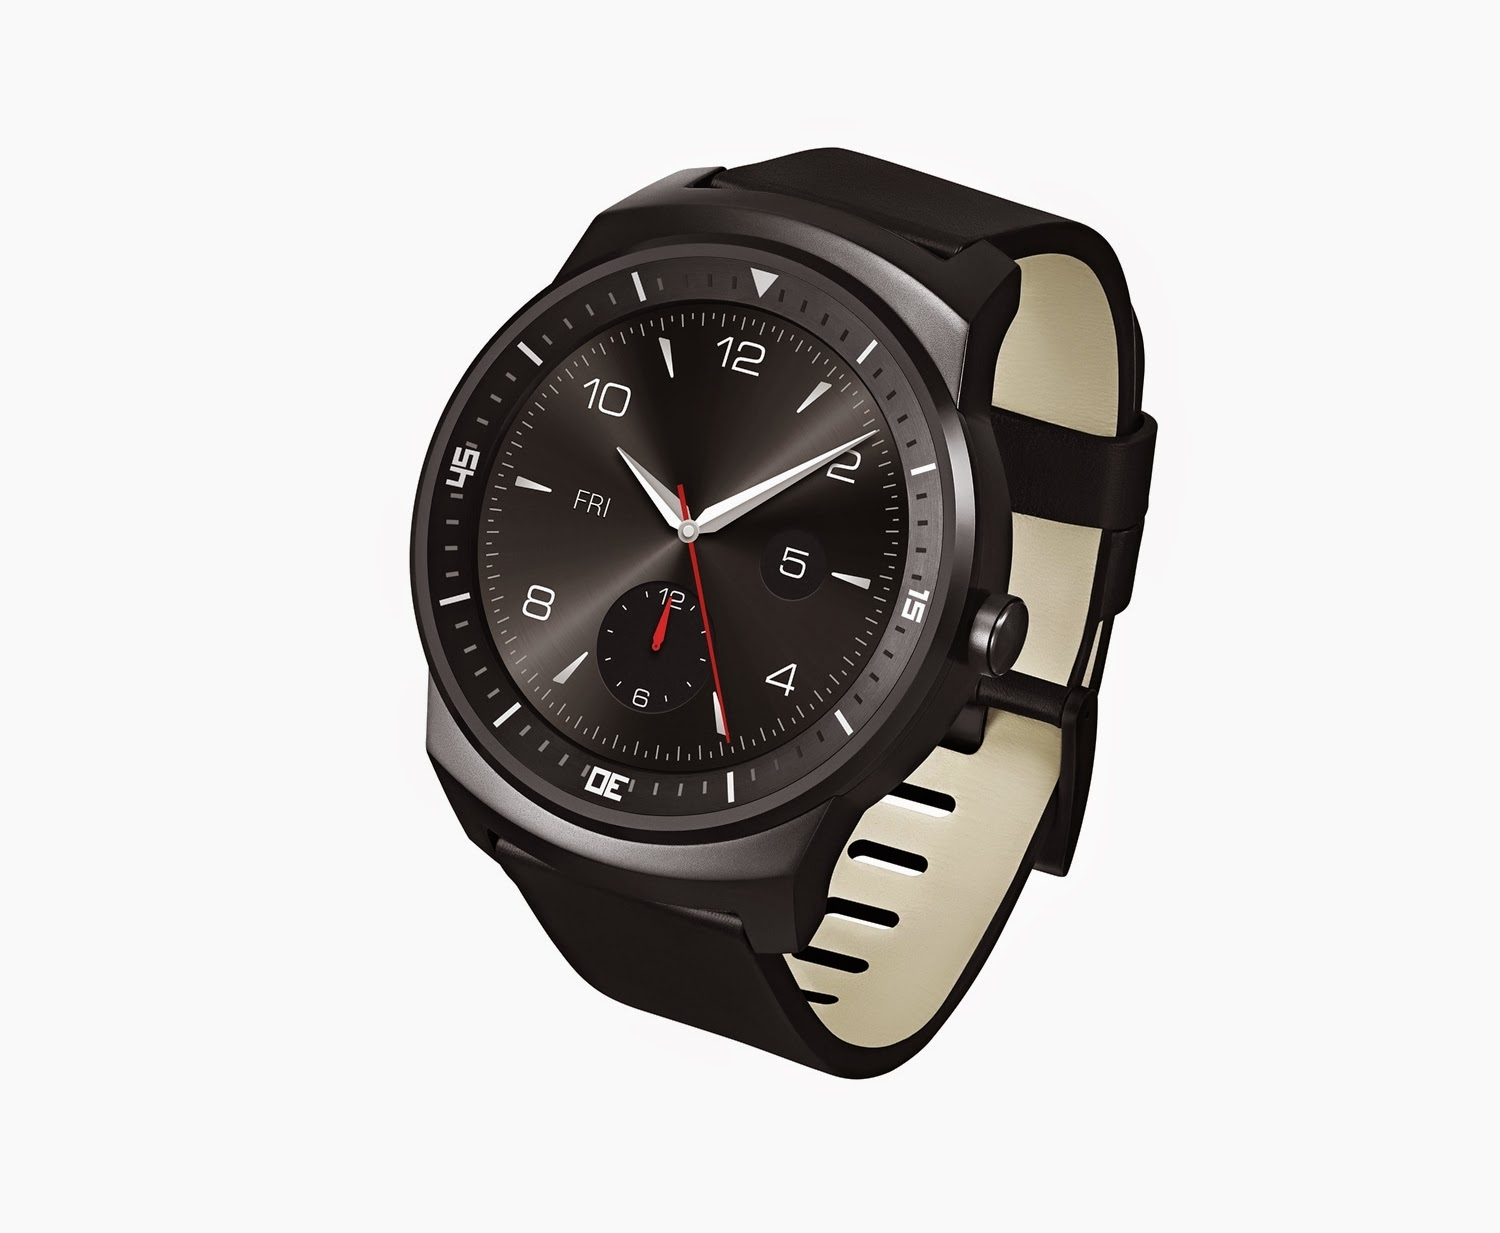 LG revealed plans to release the international smart hours G Watch R